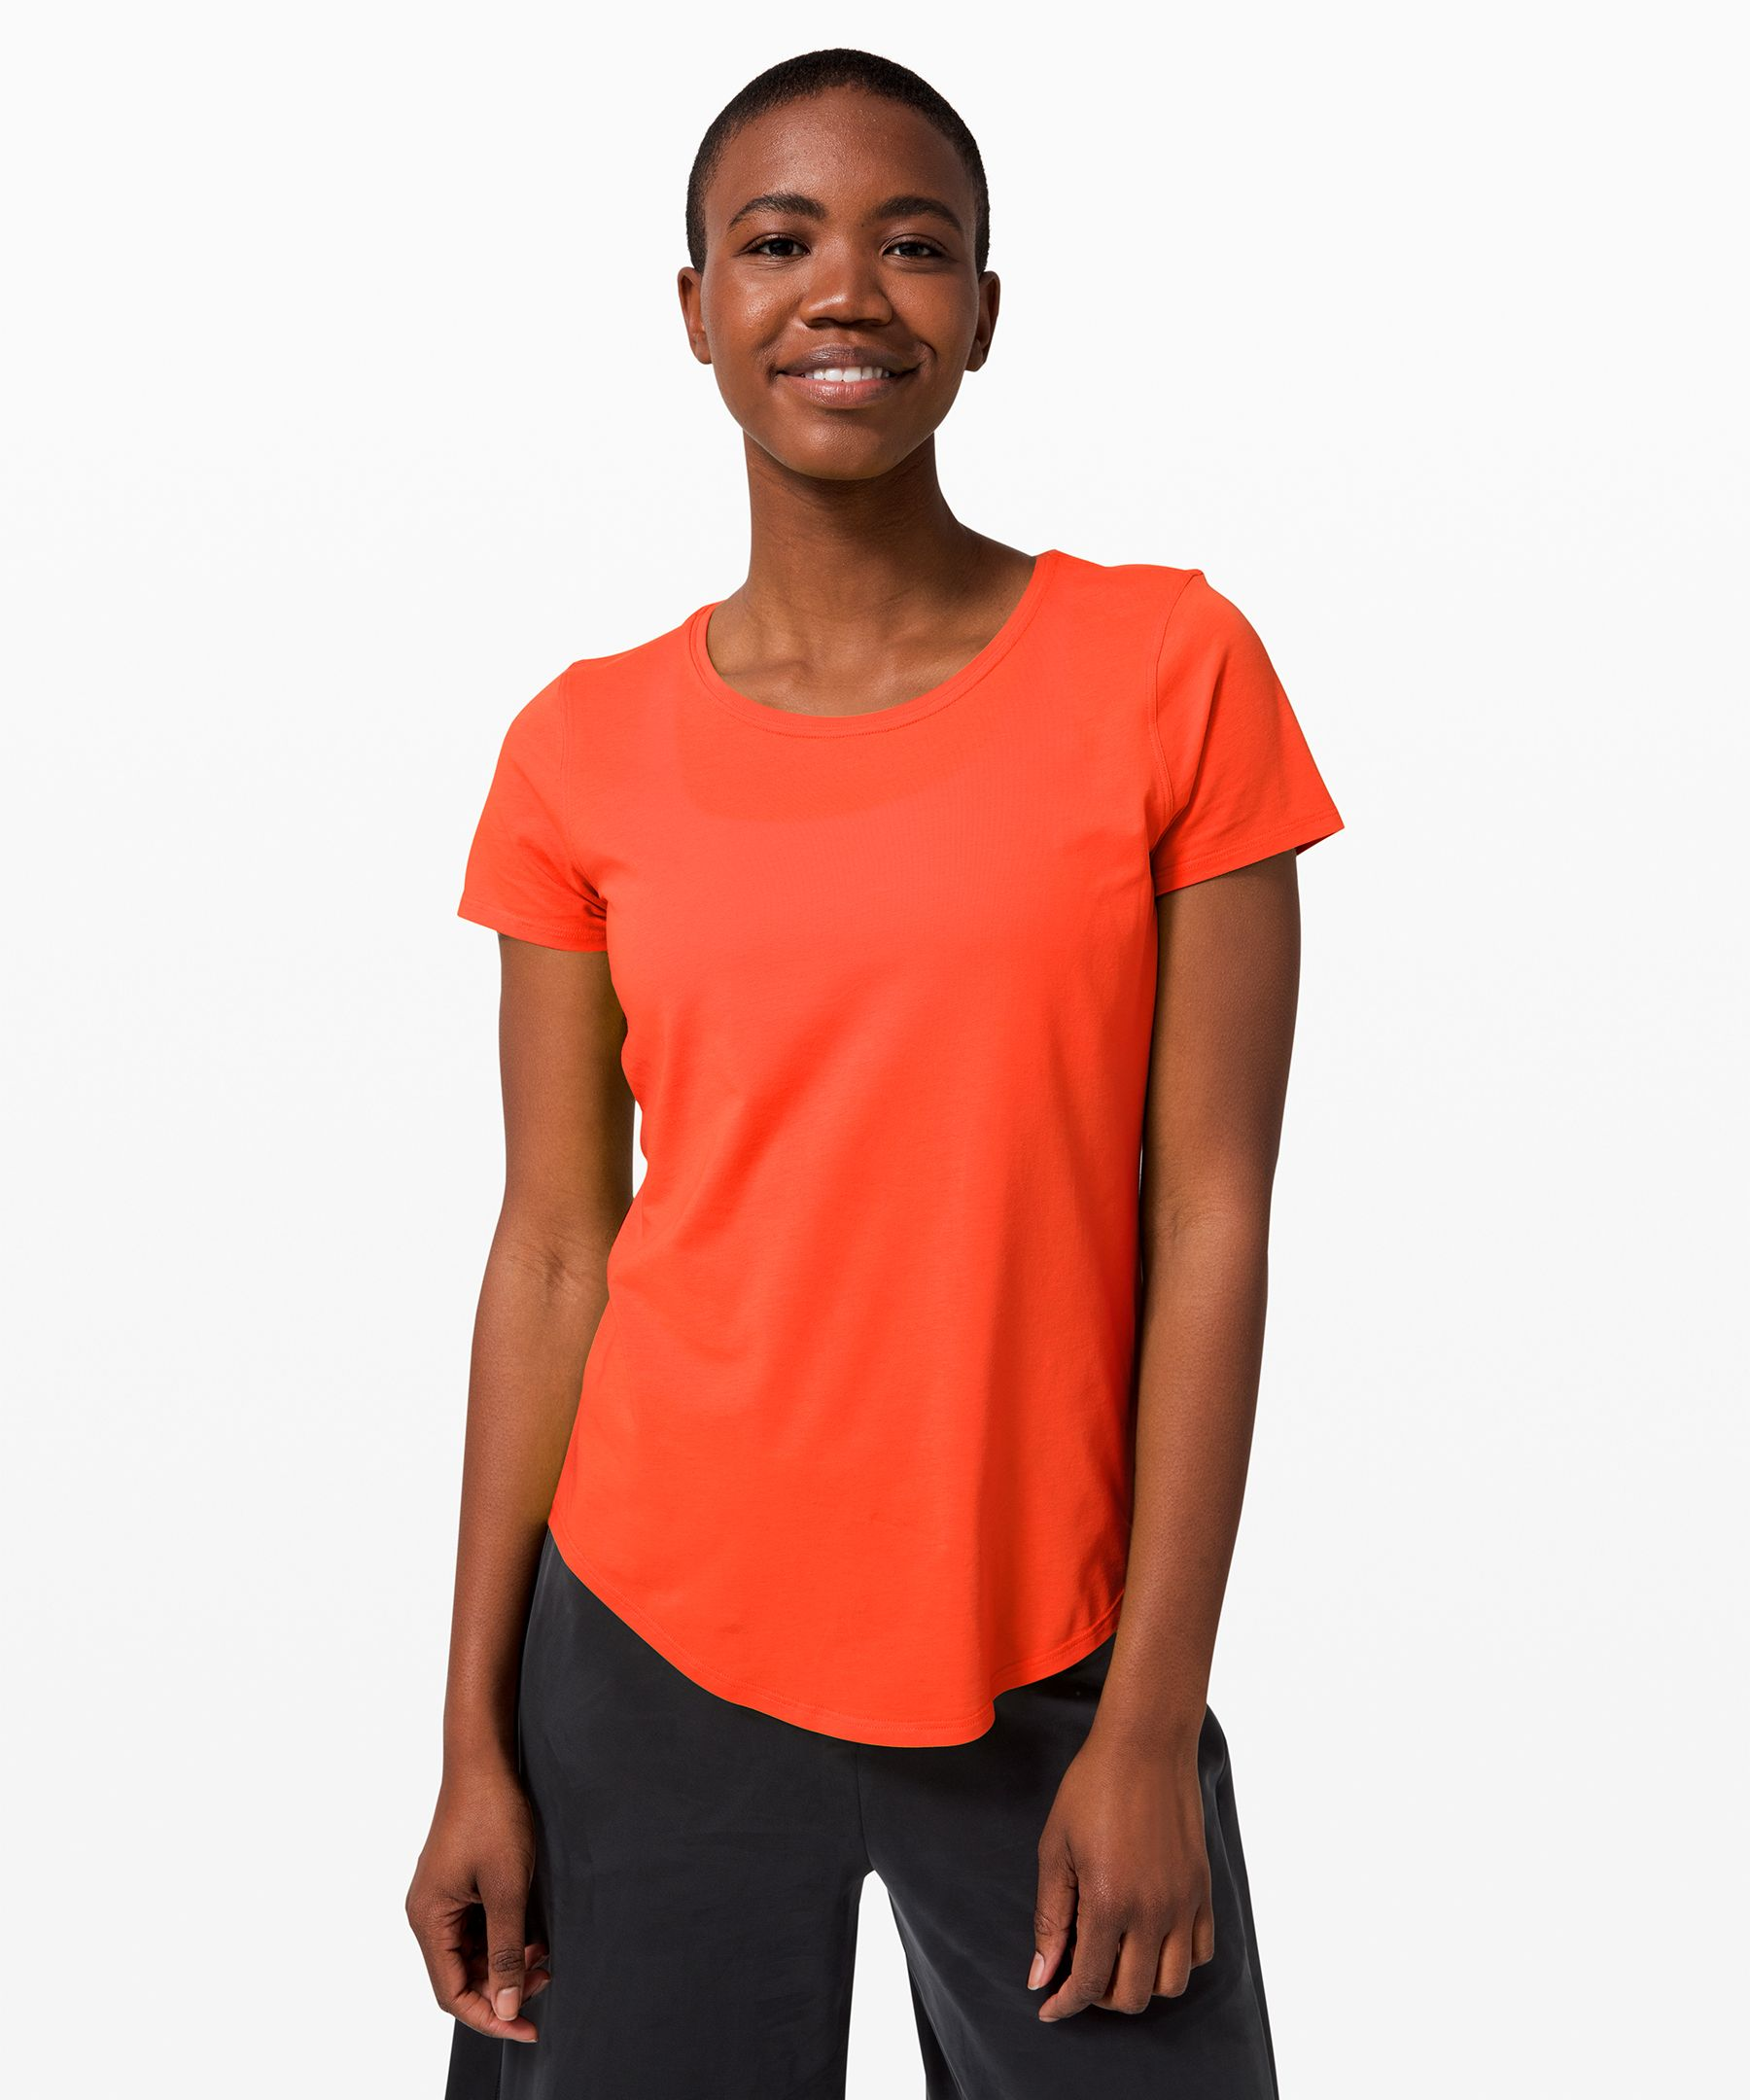 This super-soft crewneck  t-shirt won\\\'t wear out its  welcome. With added stretch  for mobility and an easy fit  to keep you cool, it\\\'s your  versatile essential, every day.